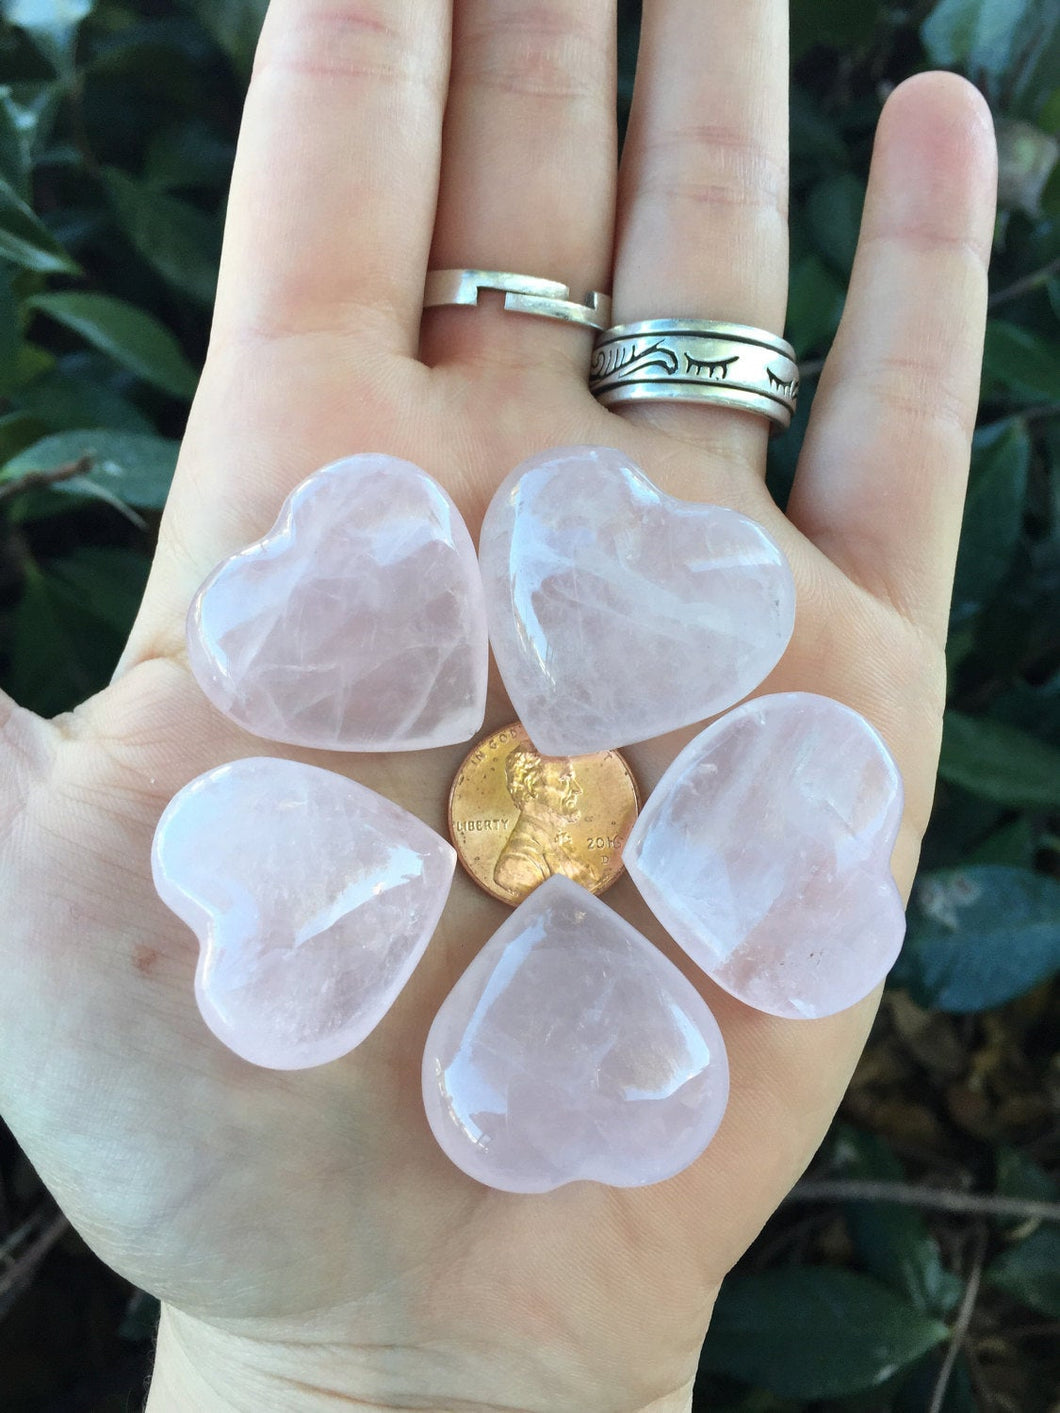 Rose Quartz Pink Love Heart Shaped Rocks set of 5 Crystal Stones